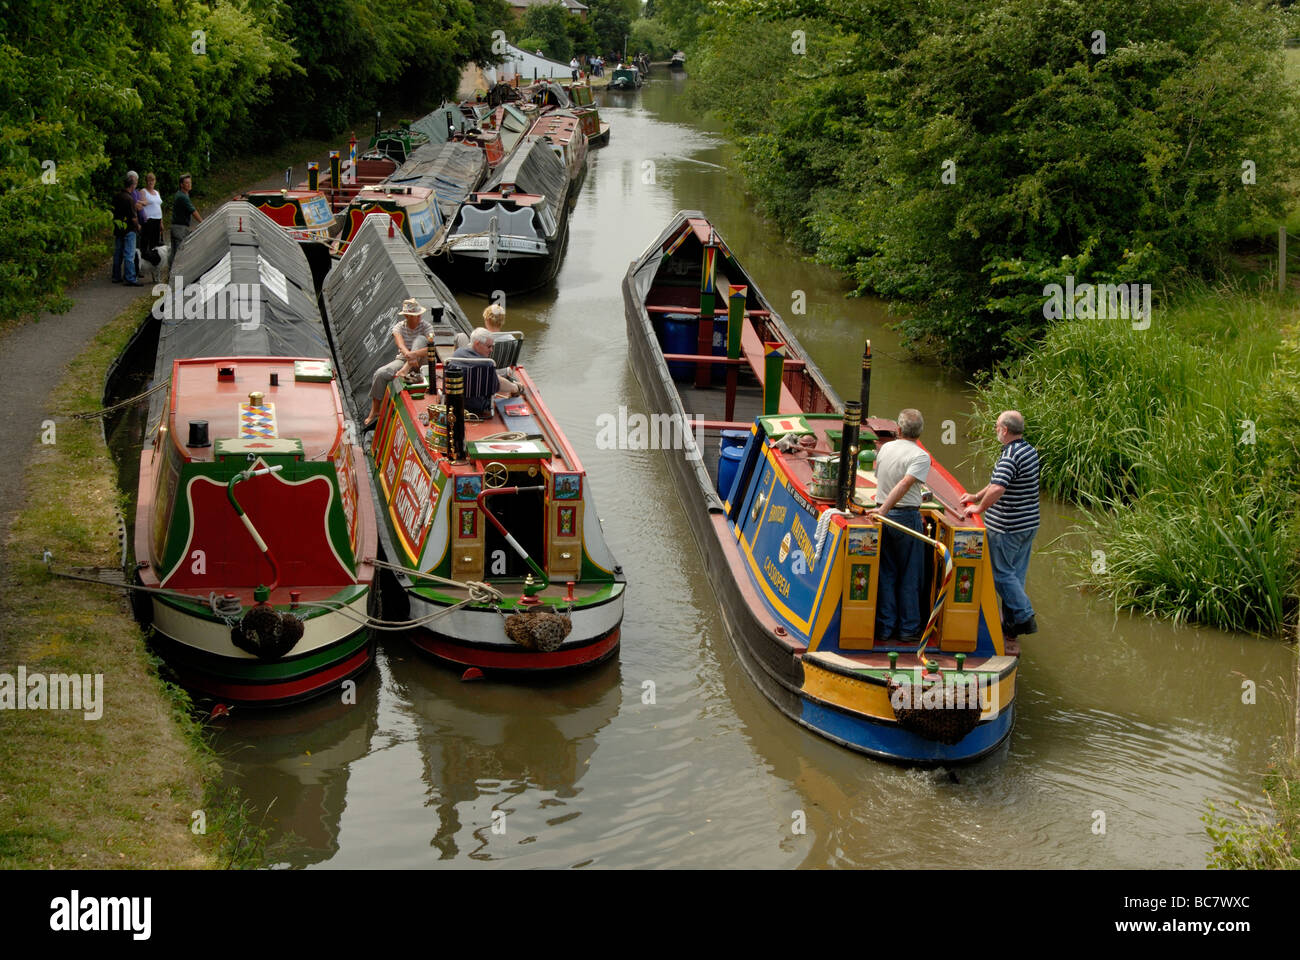 British Waterways working narrowboat passing other working boats under canvas, breasted up on the canal at Braunston, - Stock Image